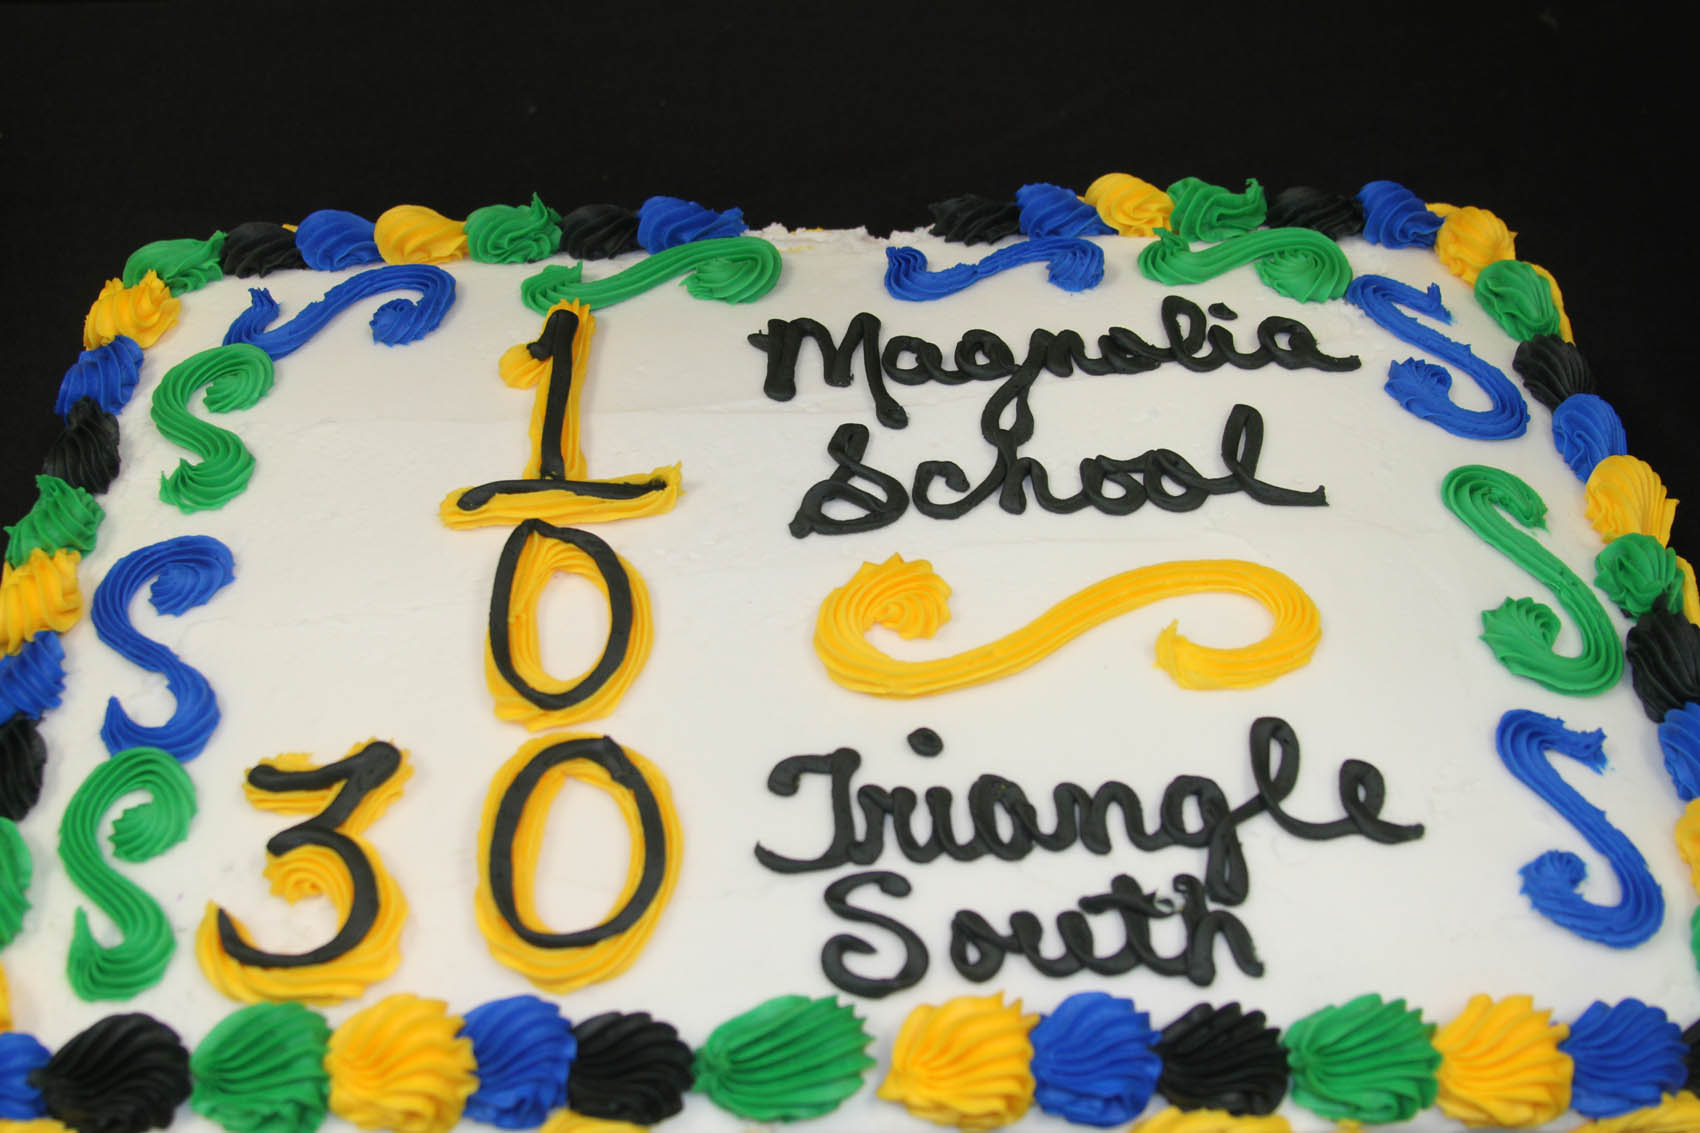 Click to enlarge,  A grand celebration was held on Sept. 20 to mark two milestones - the 30 years of service of the Triangle South Enterprise Center and the 100 years in existence of Magnolia School. Daily Record Photo by Melody Brown-Peyton.